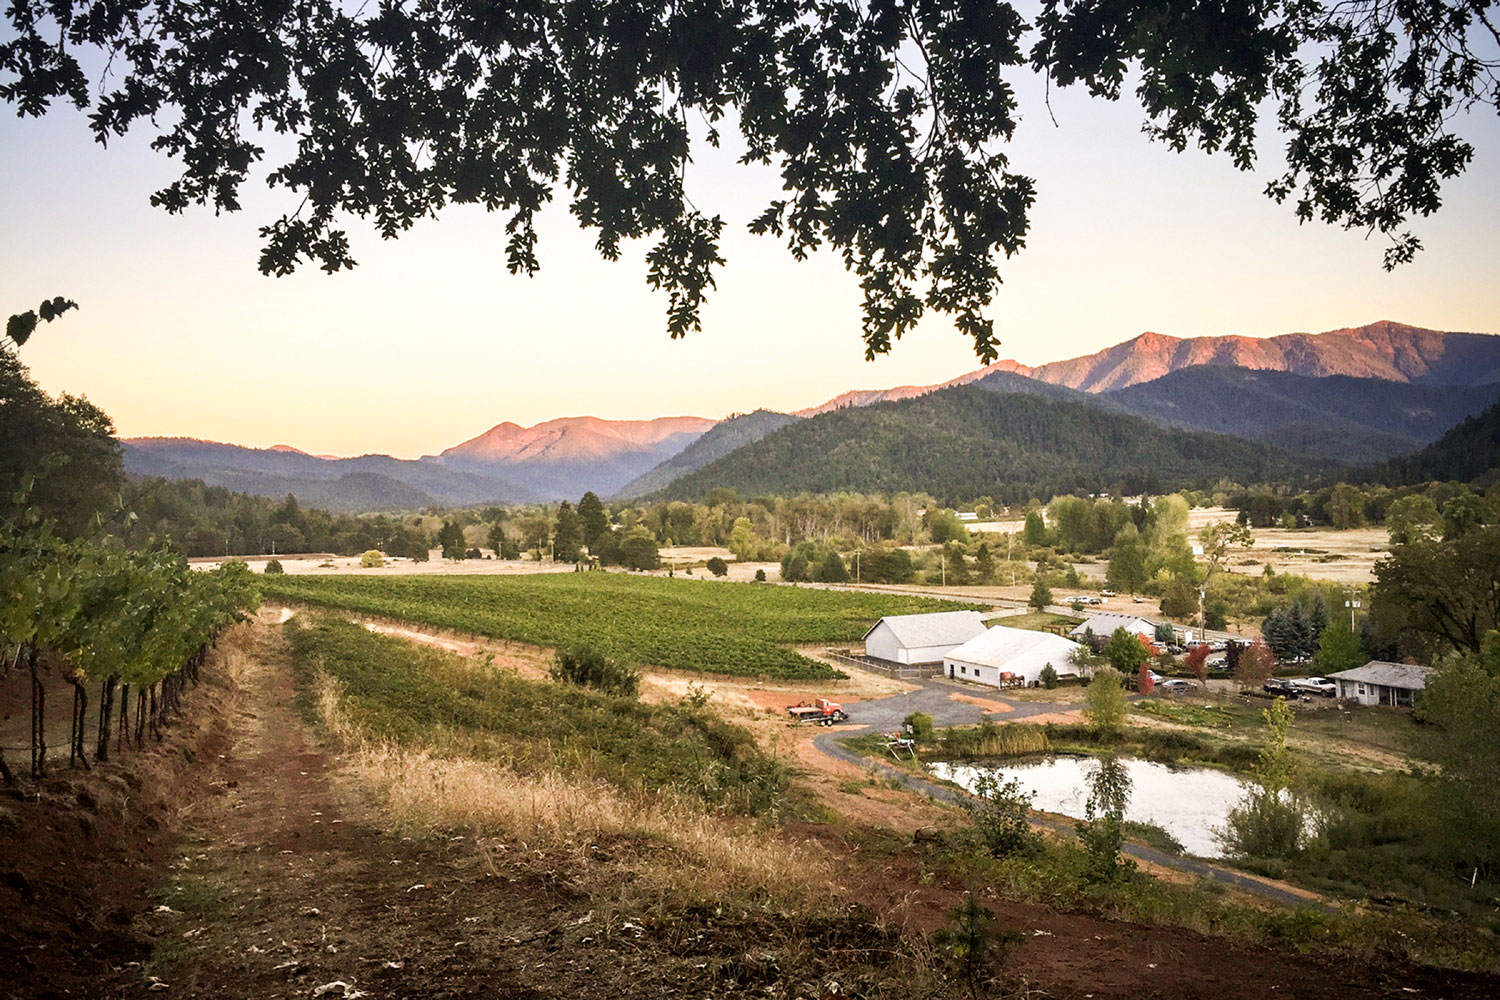 Producer of award-winning, handcrafted wines, Deer Creek Vineyards offers winemakers an incredible opportunity to own and operate a successful business that includes a 40-plus acre vineyard, wine production facilities, barrel storage, wine tasting room with direct consumer and wholesale wine sales.